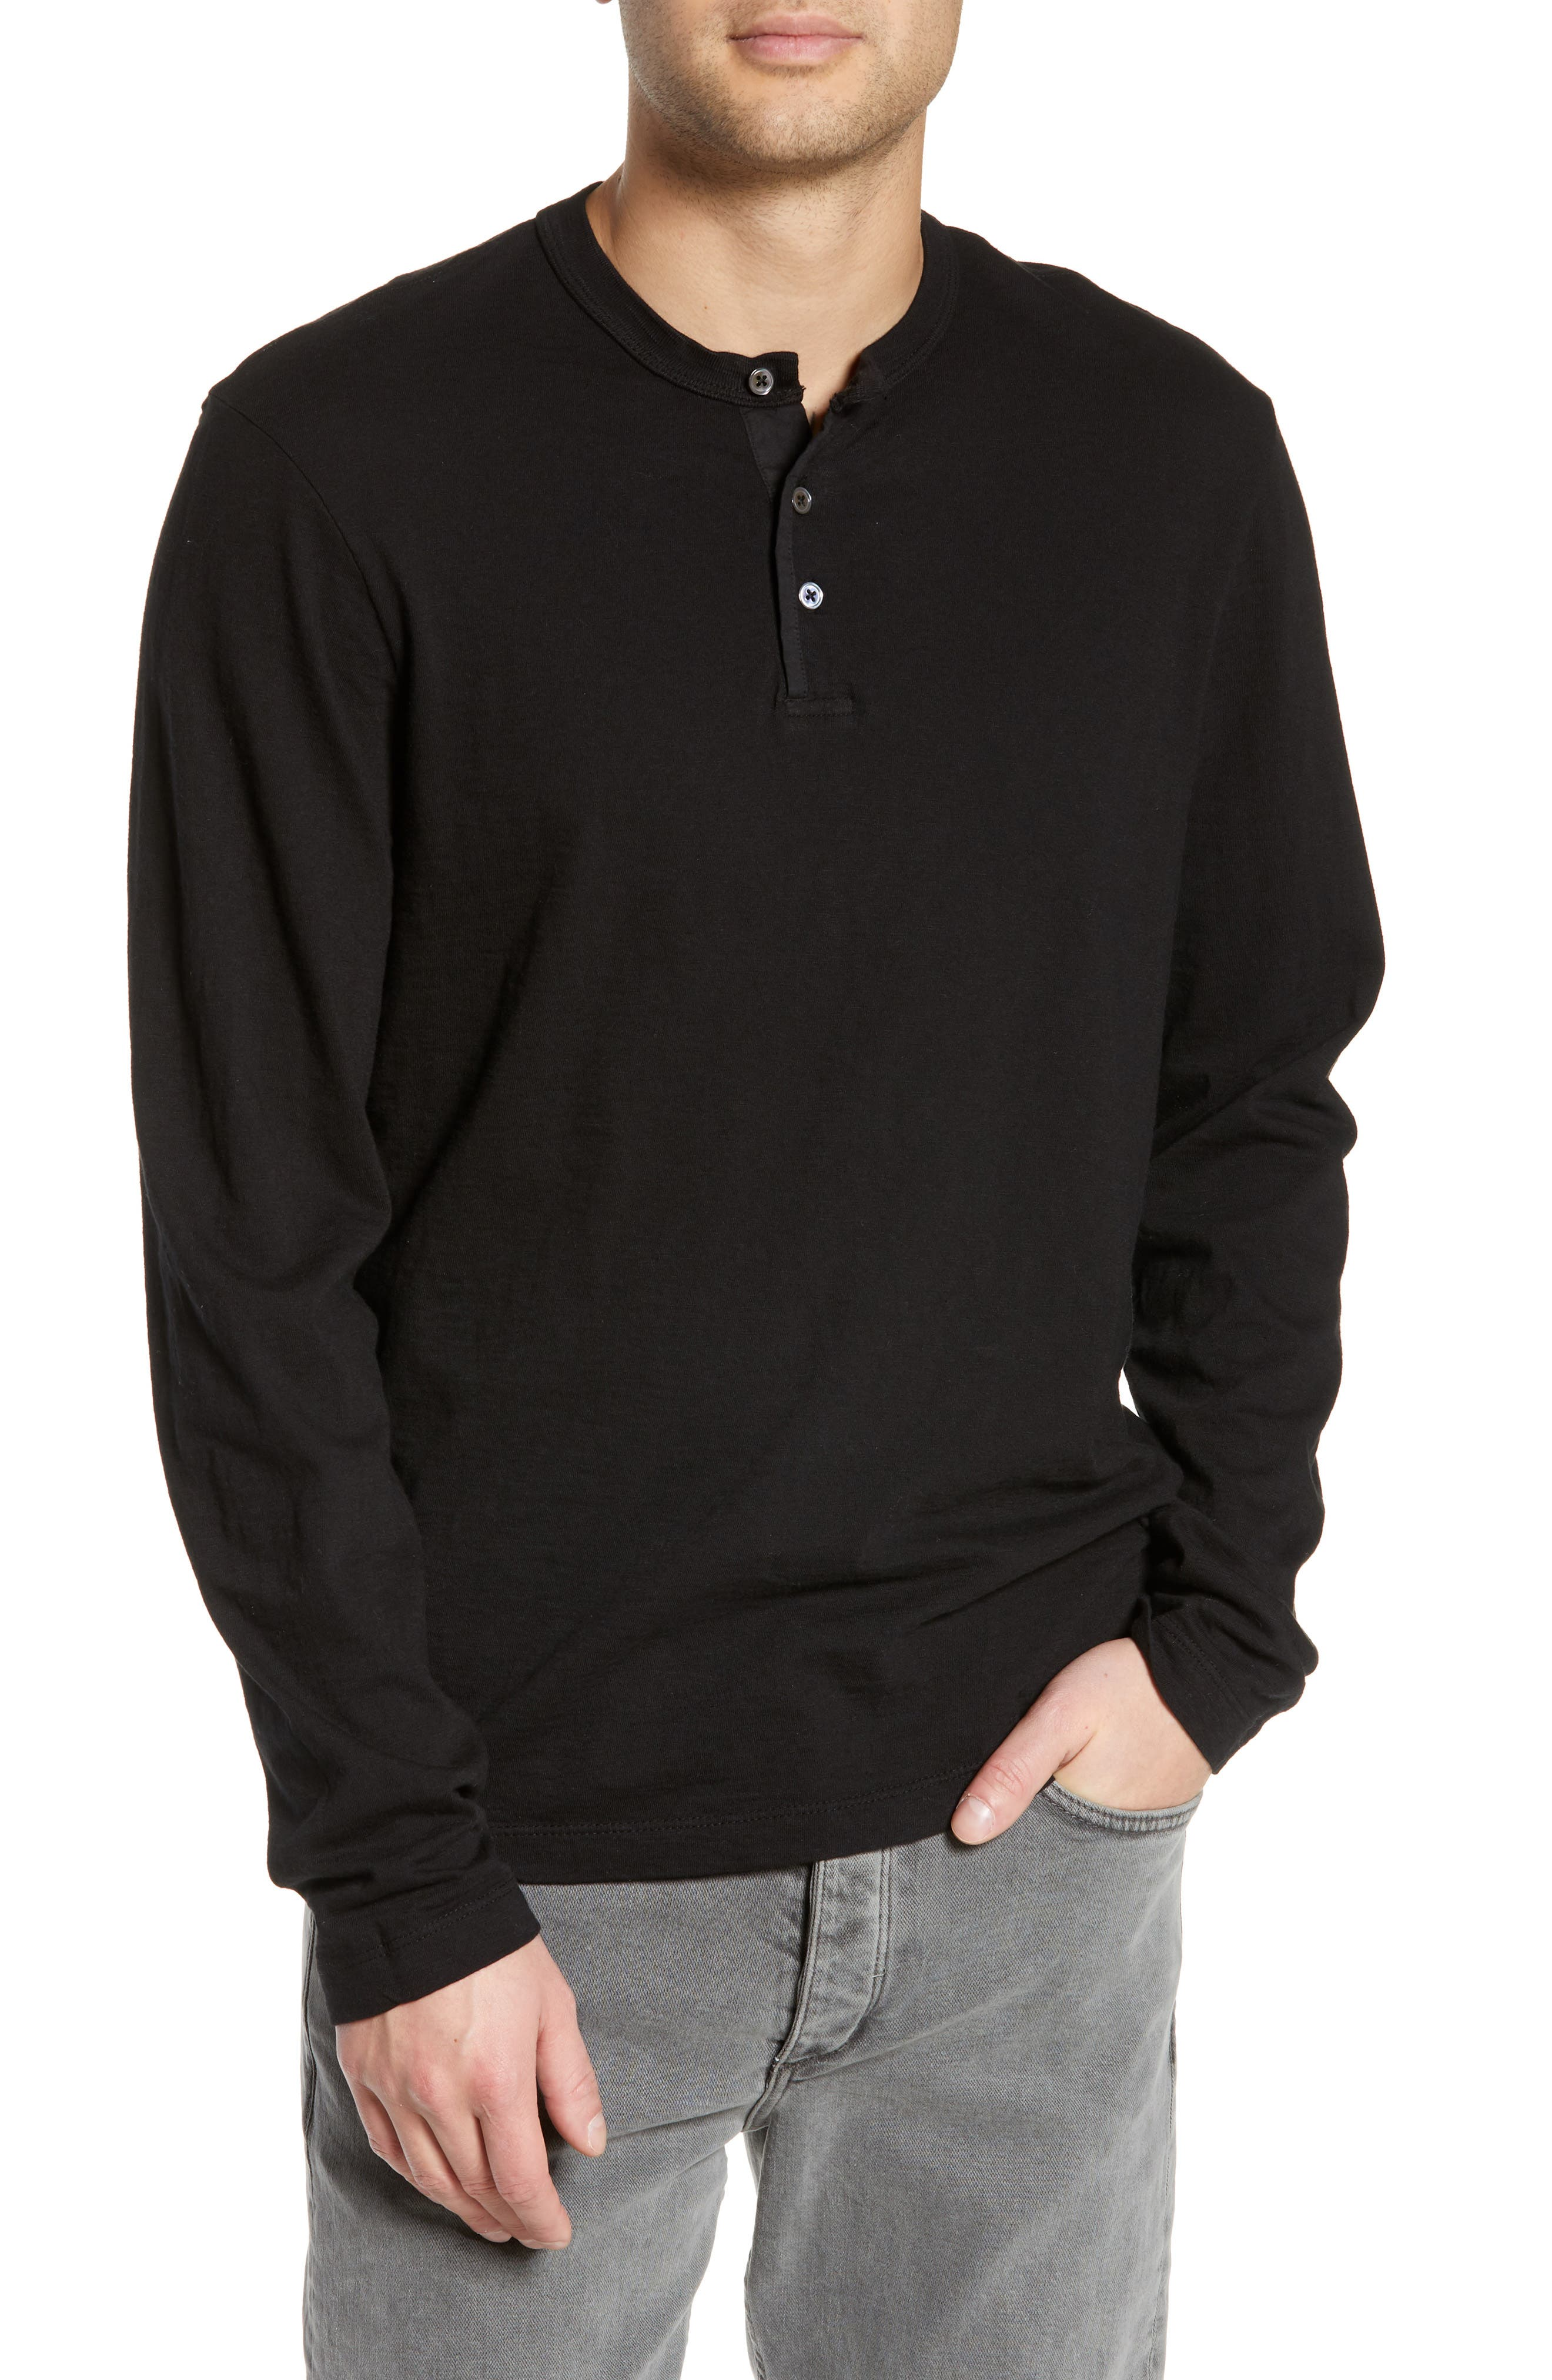 JAMES PERSE, Slim Fit Long Sleeve Henley, Main thumbnail 1, color, 001